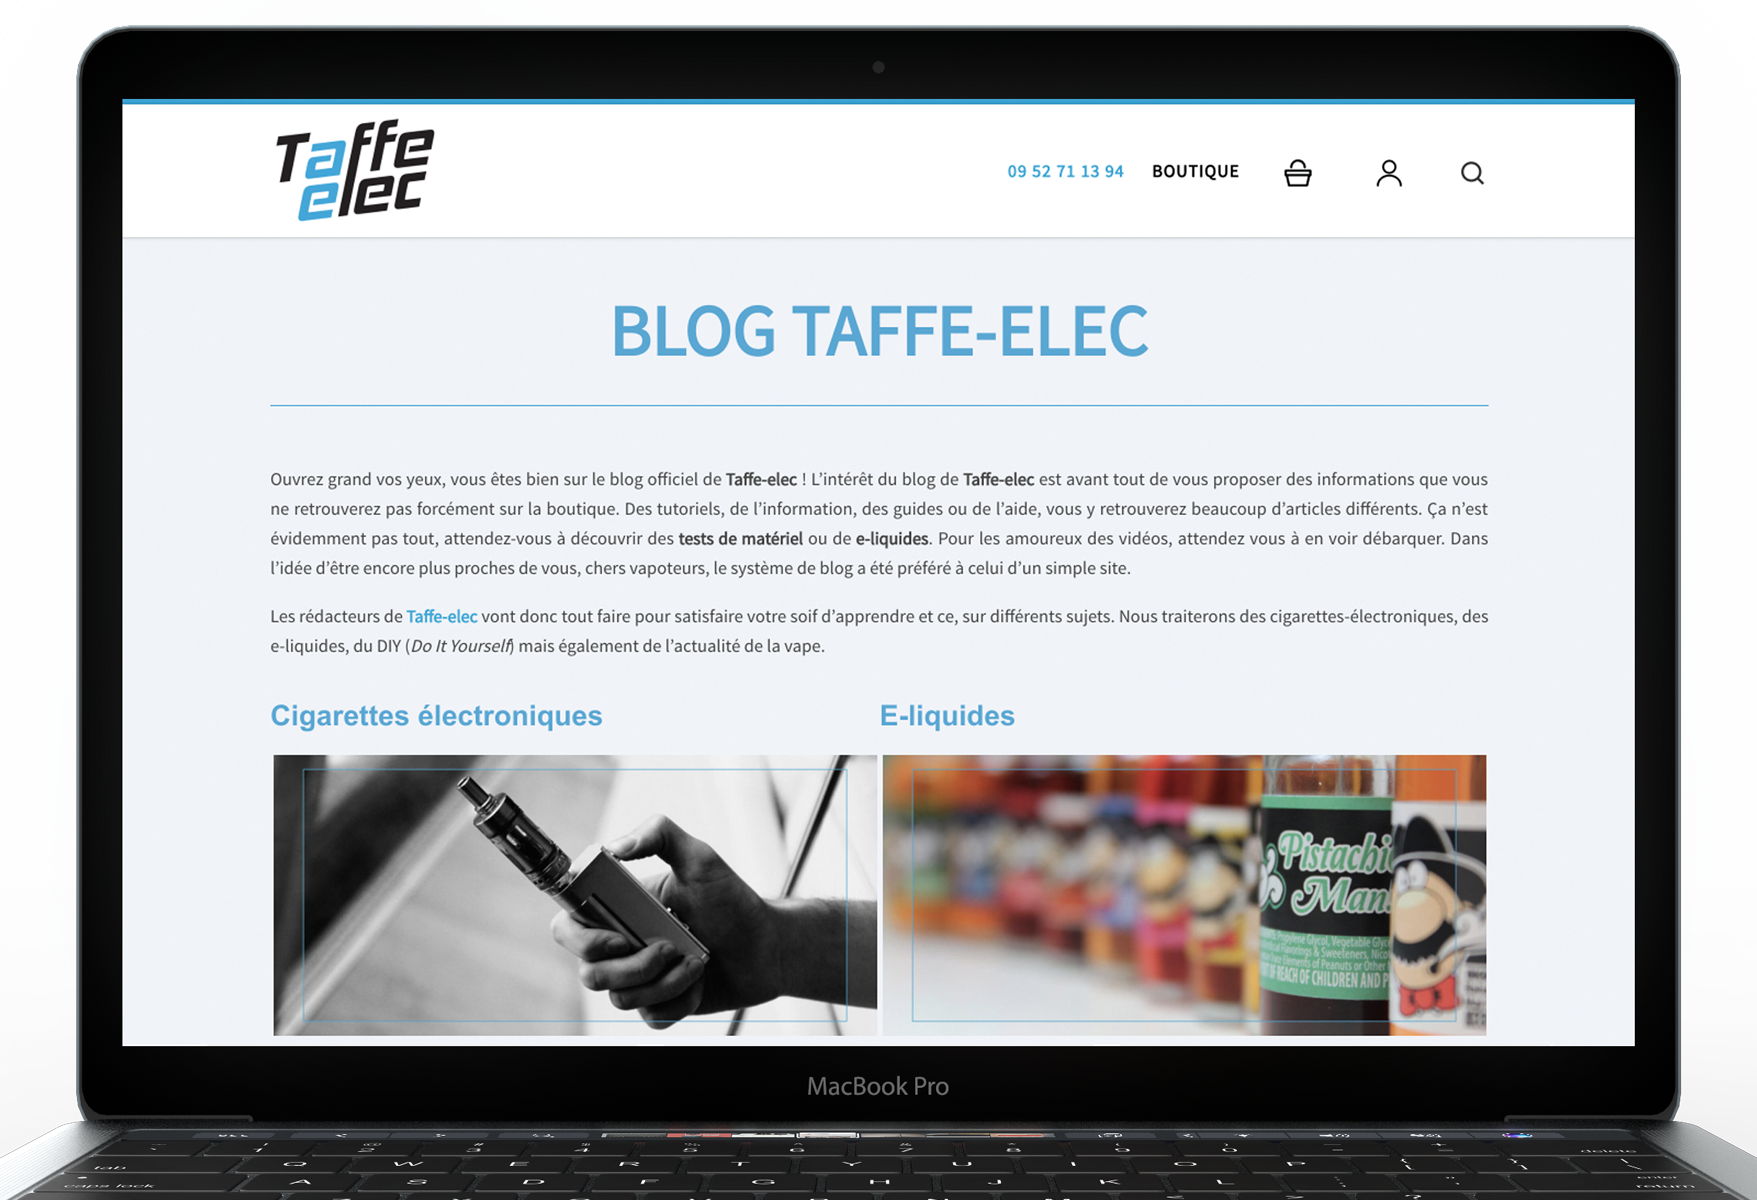 Blog Taffe-elec Web